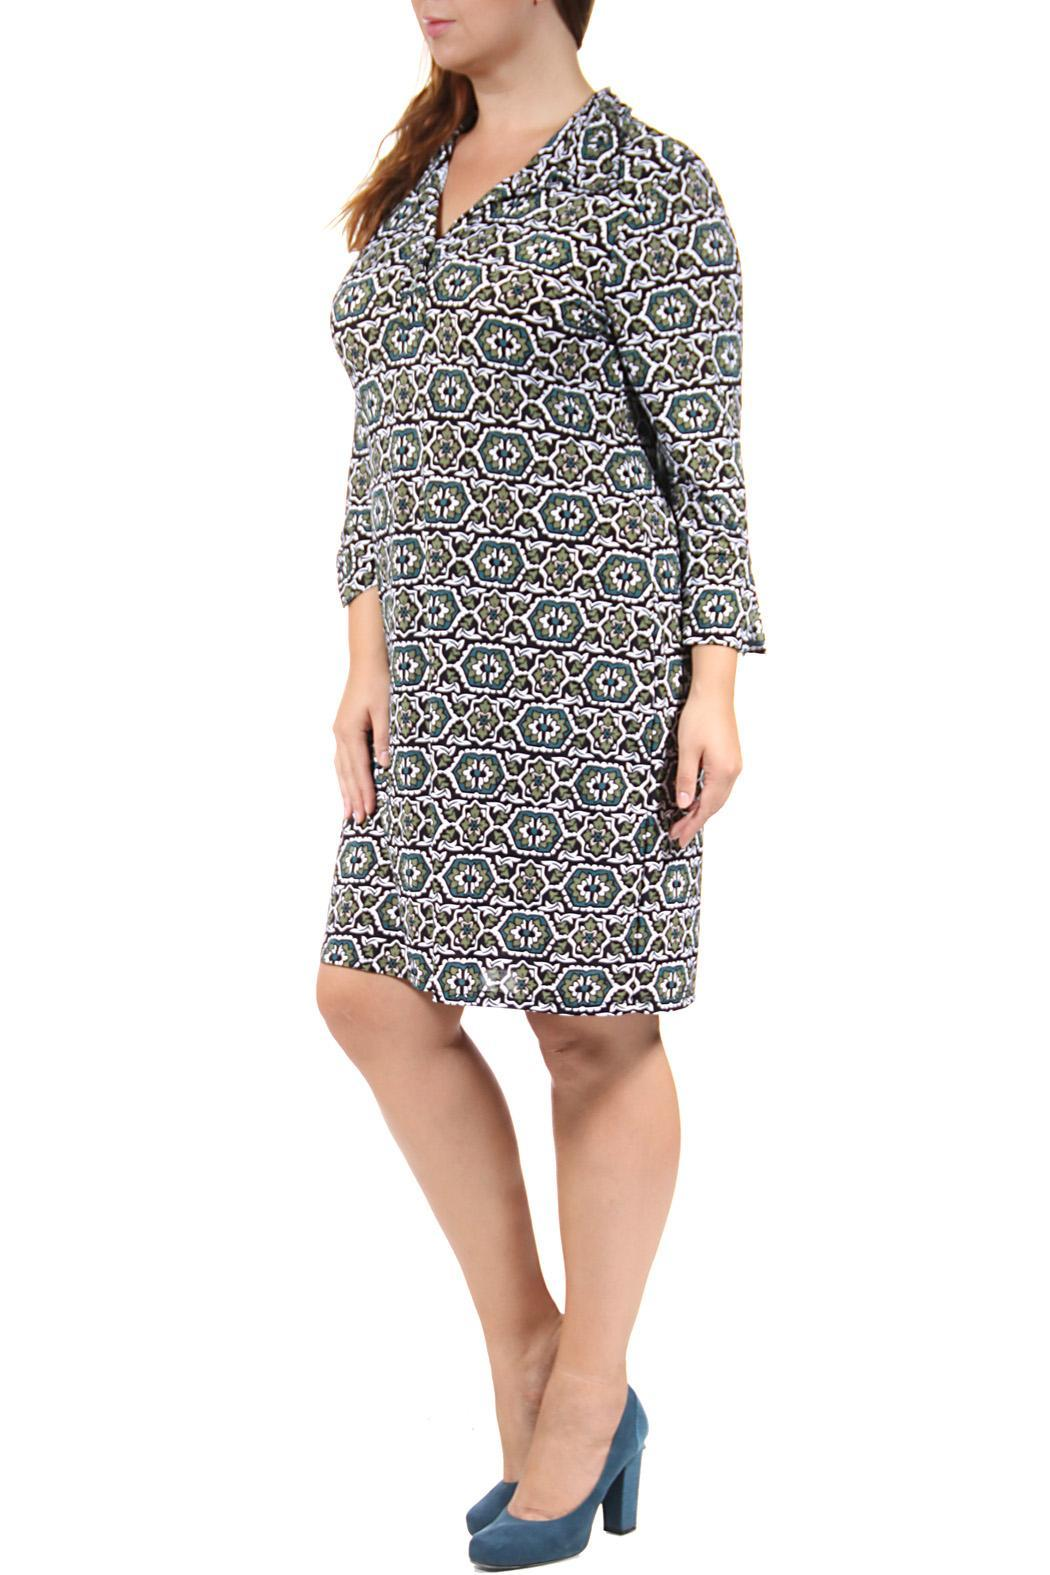 24/7 Comfort Apparel Collared Henley Dress - Front Full Image